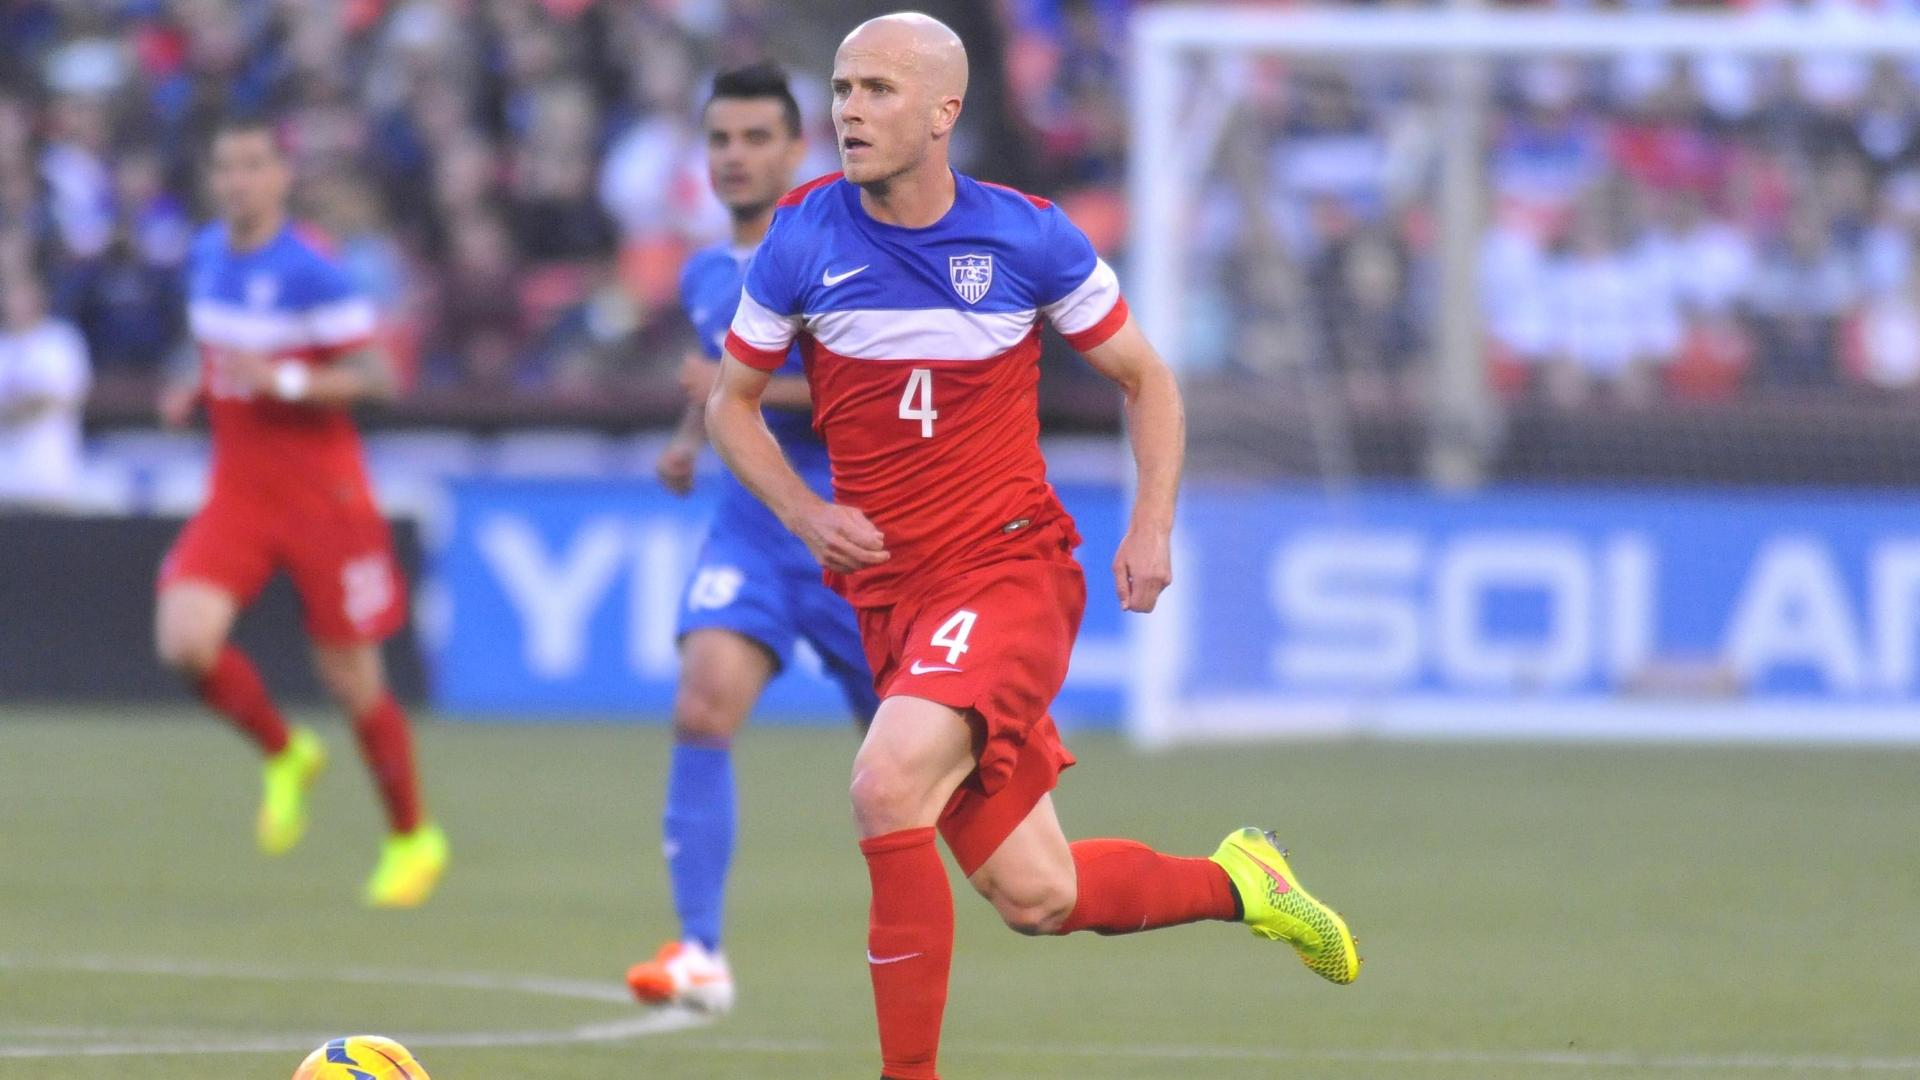 Lalas: Set pieces not the answer for U.S.